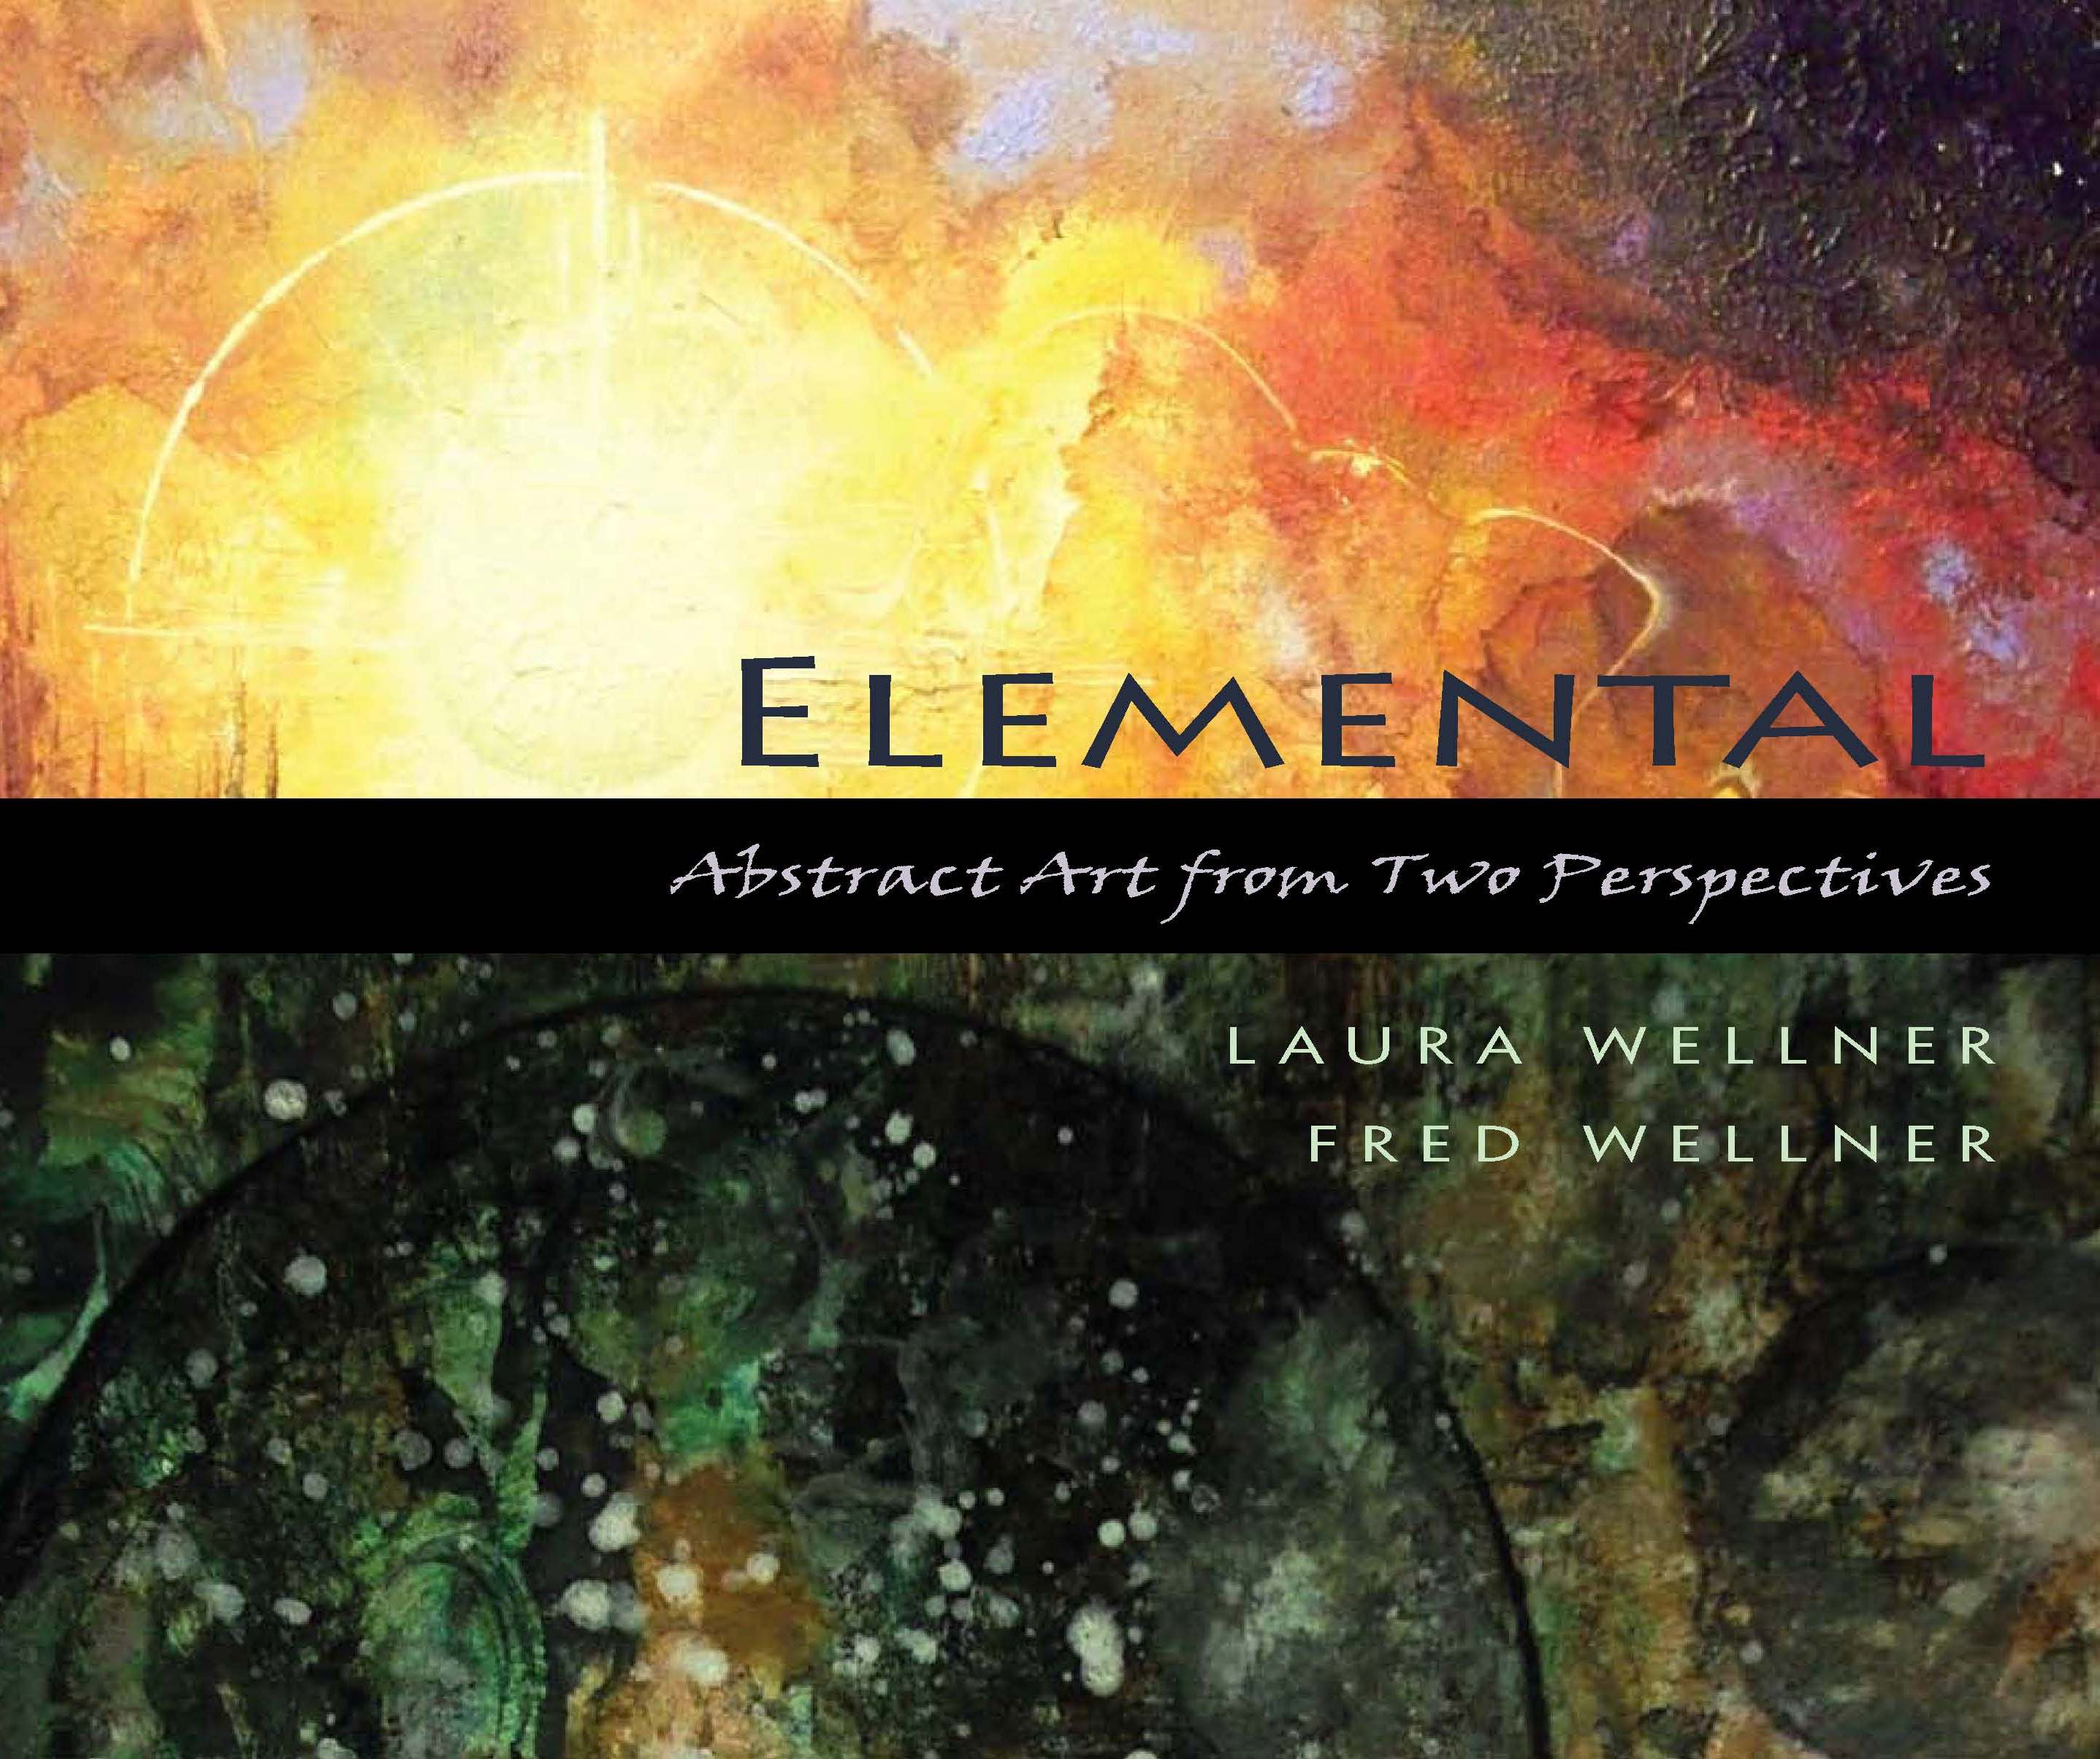 Elemental: Abstract Art from Two Perspectives, Laura Wellner, Fred Wellner